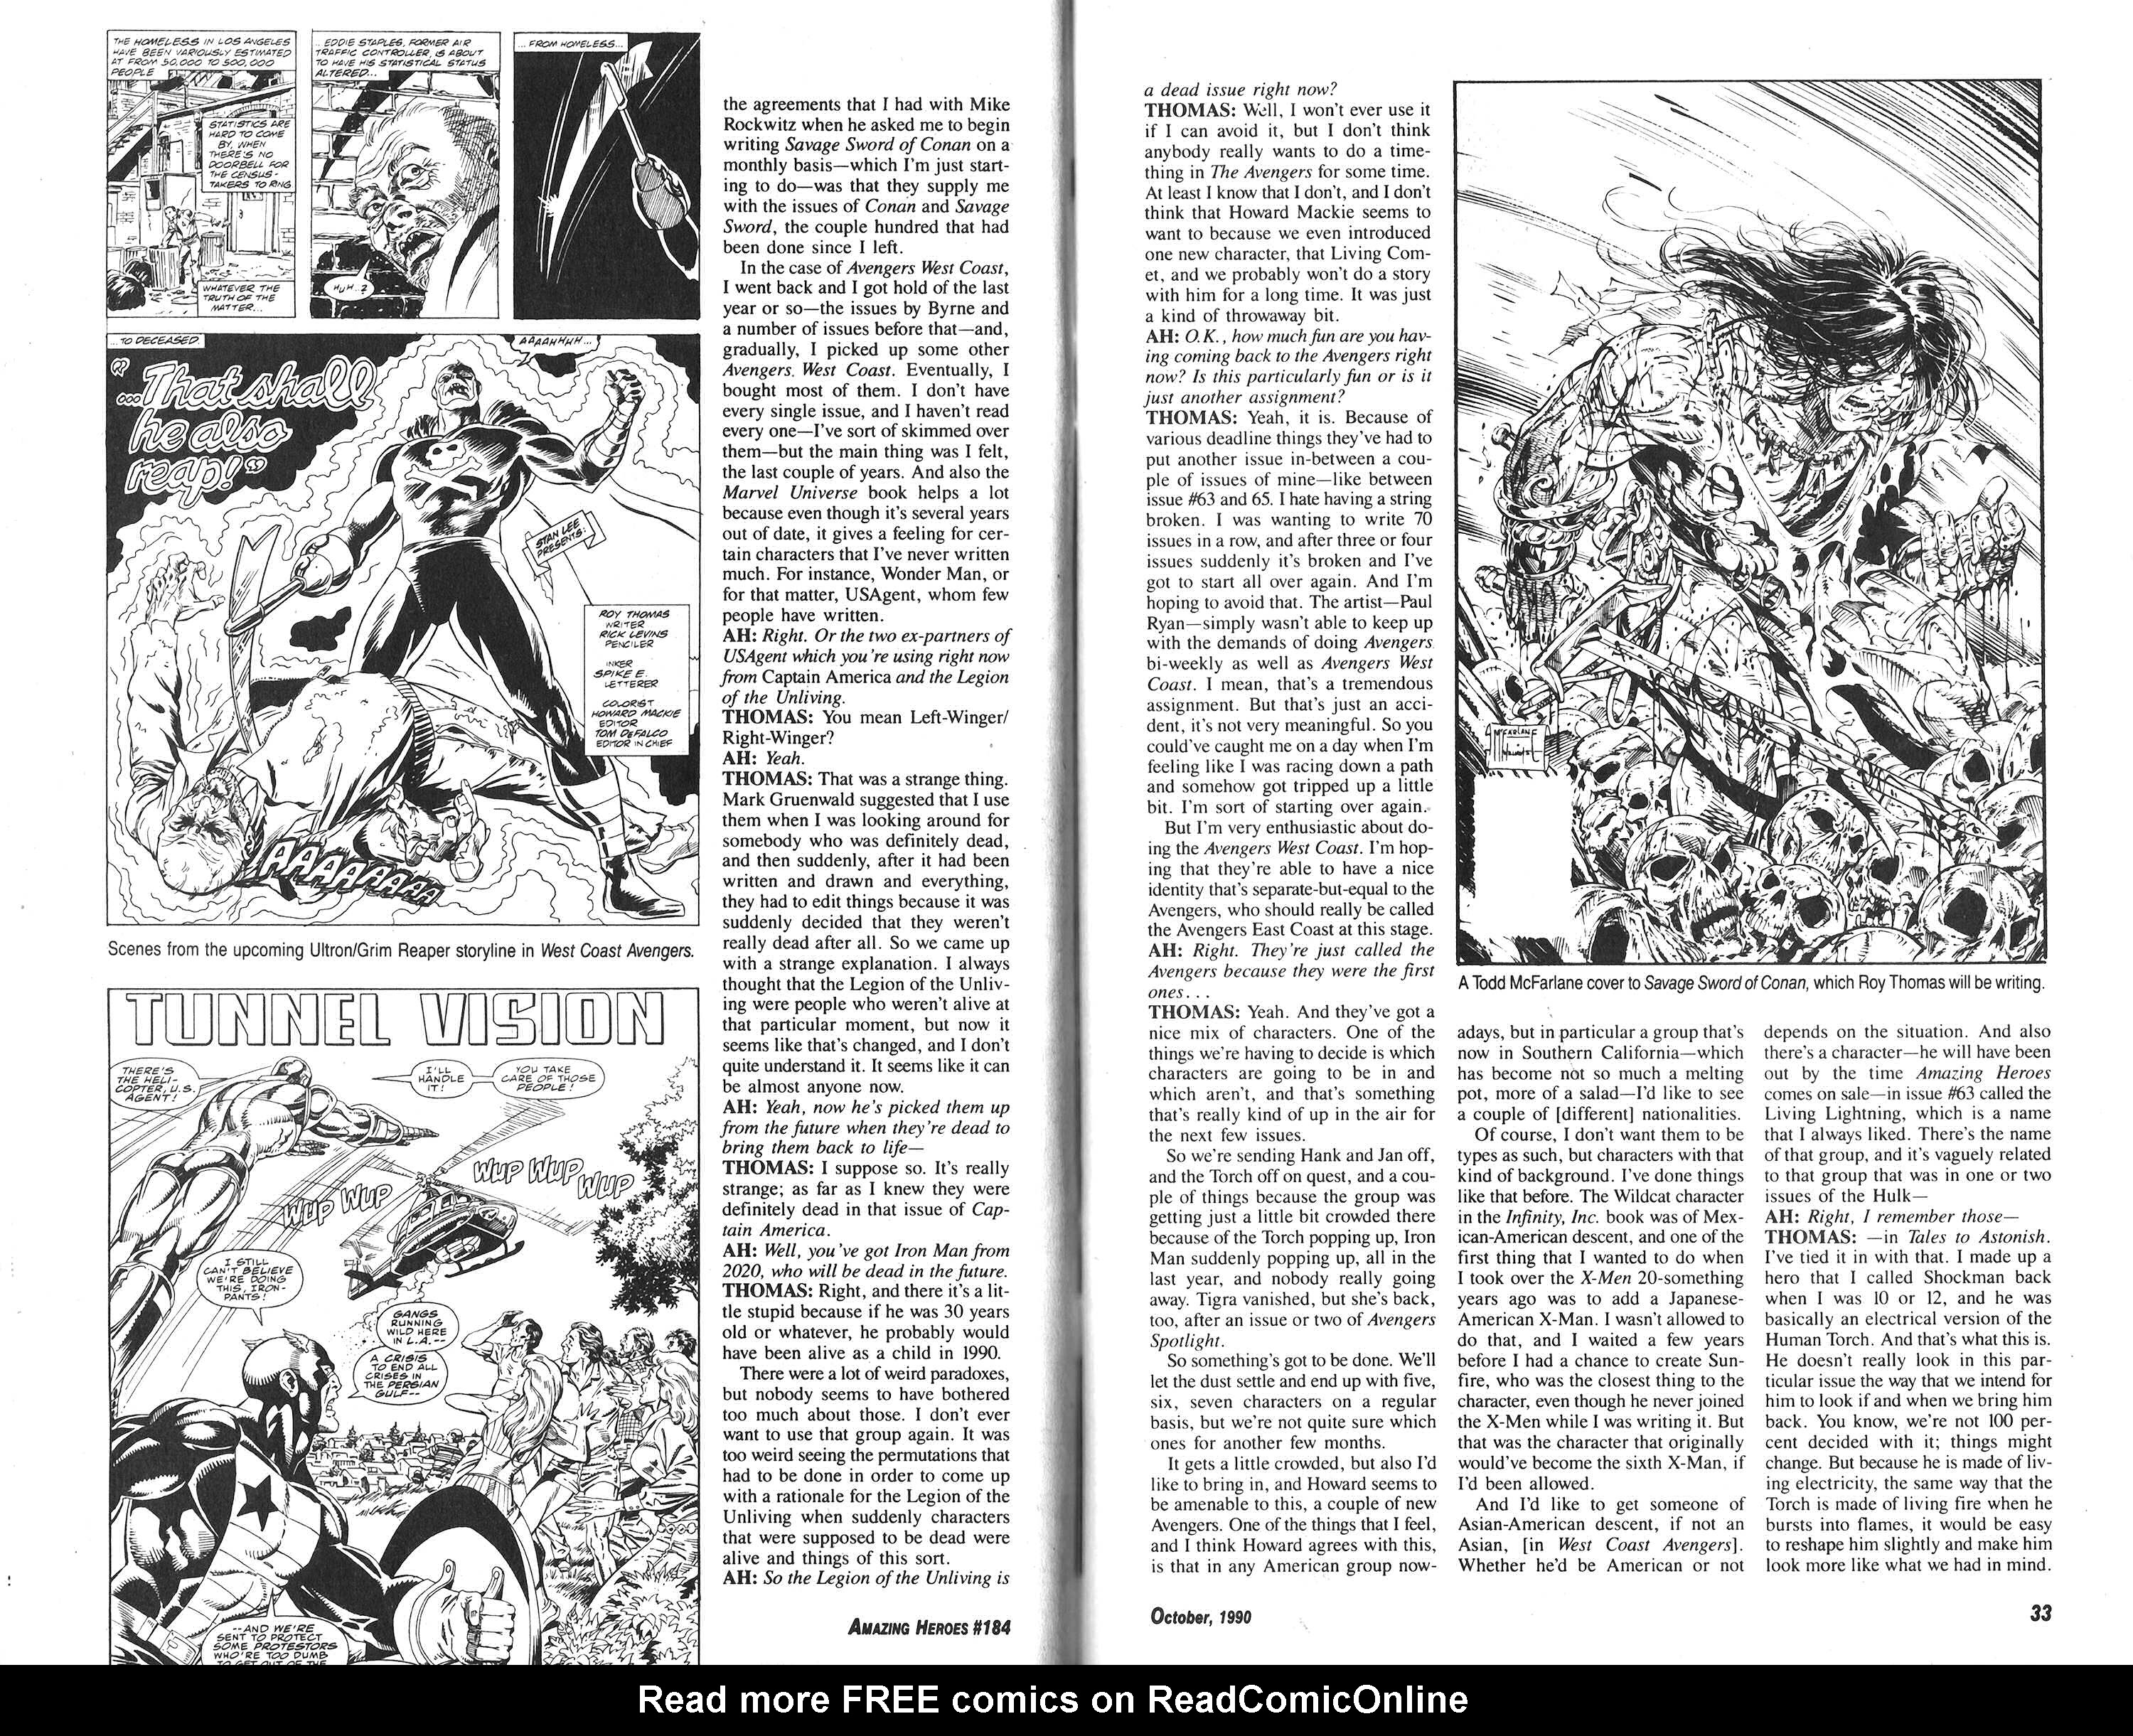 Read online Amazing Heroes comic -  Issue #184 - 17